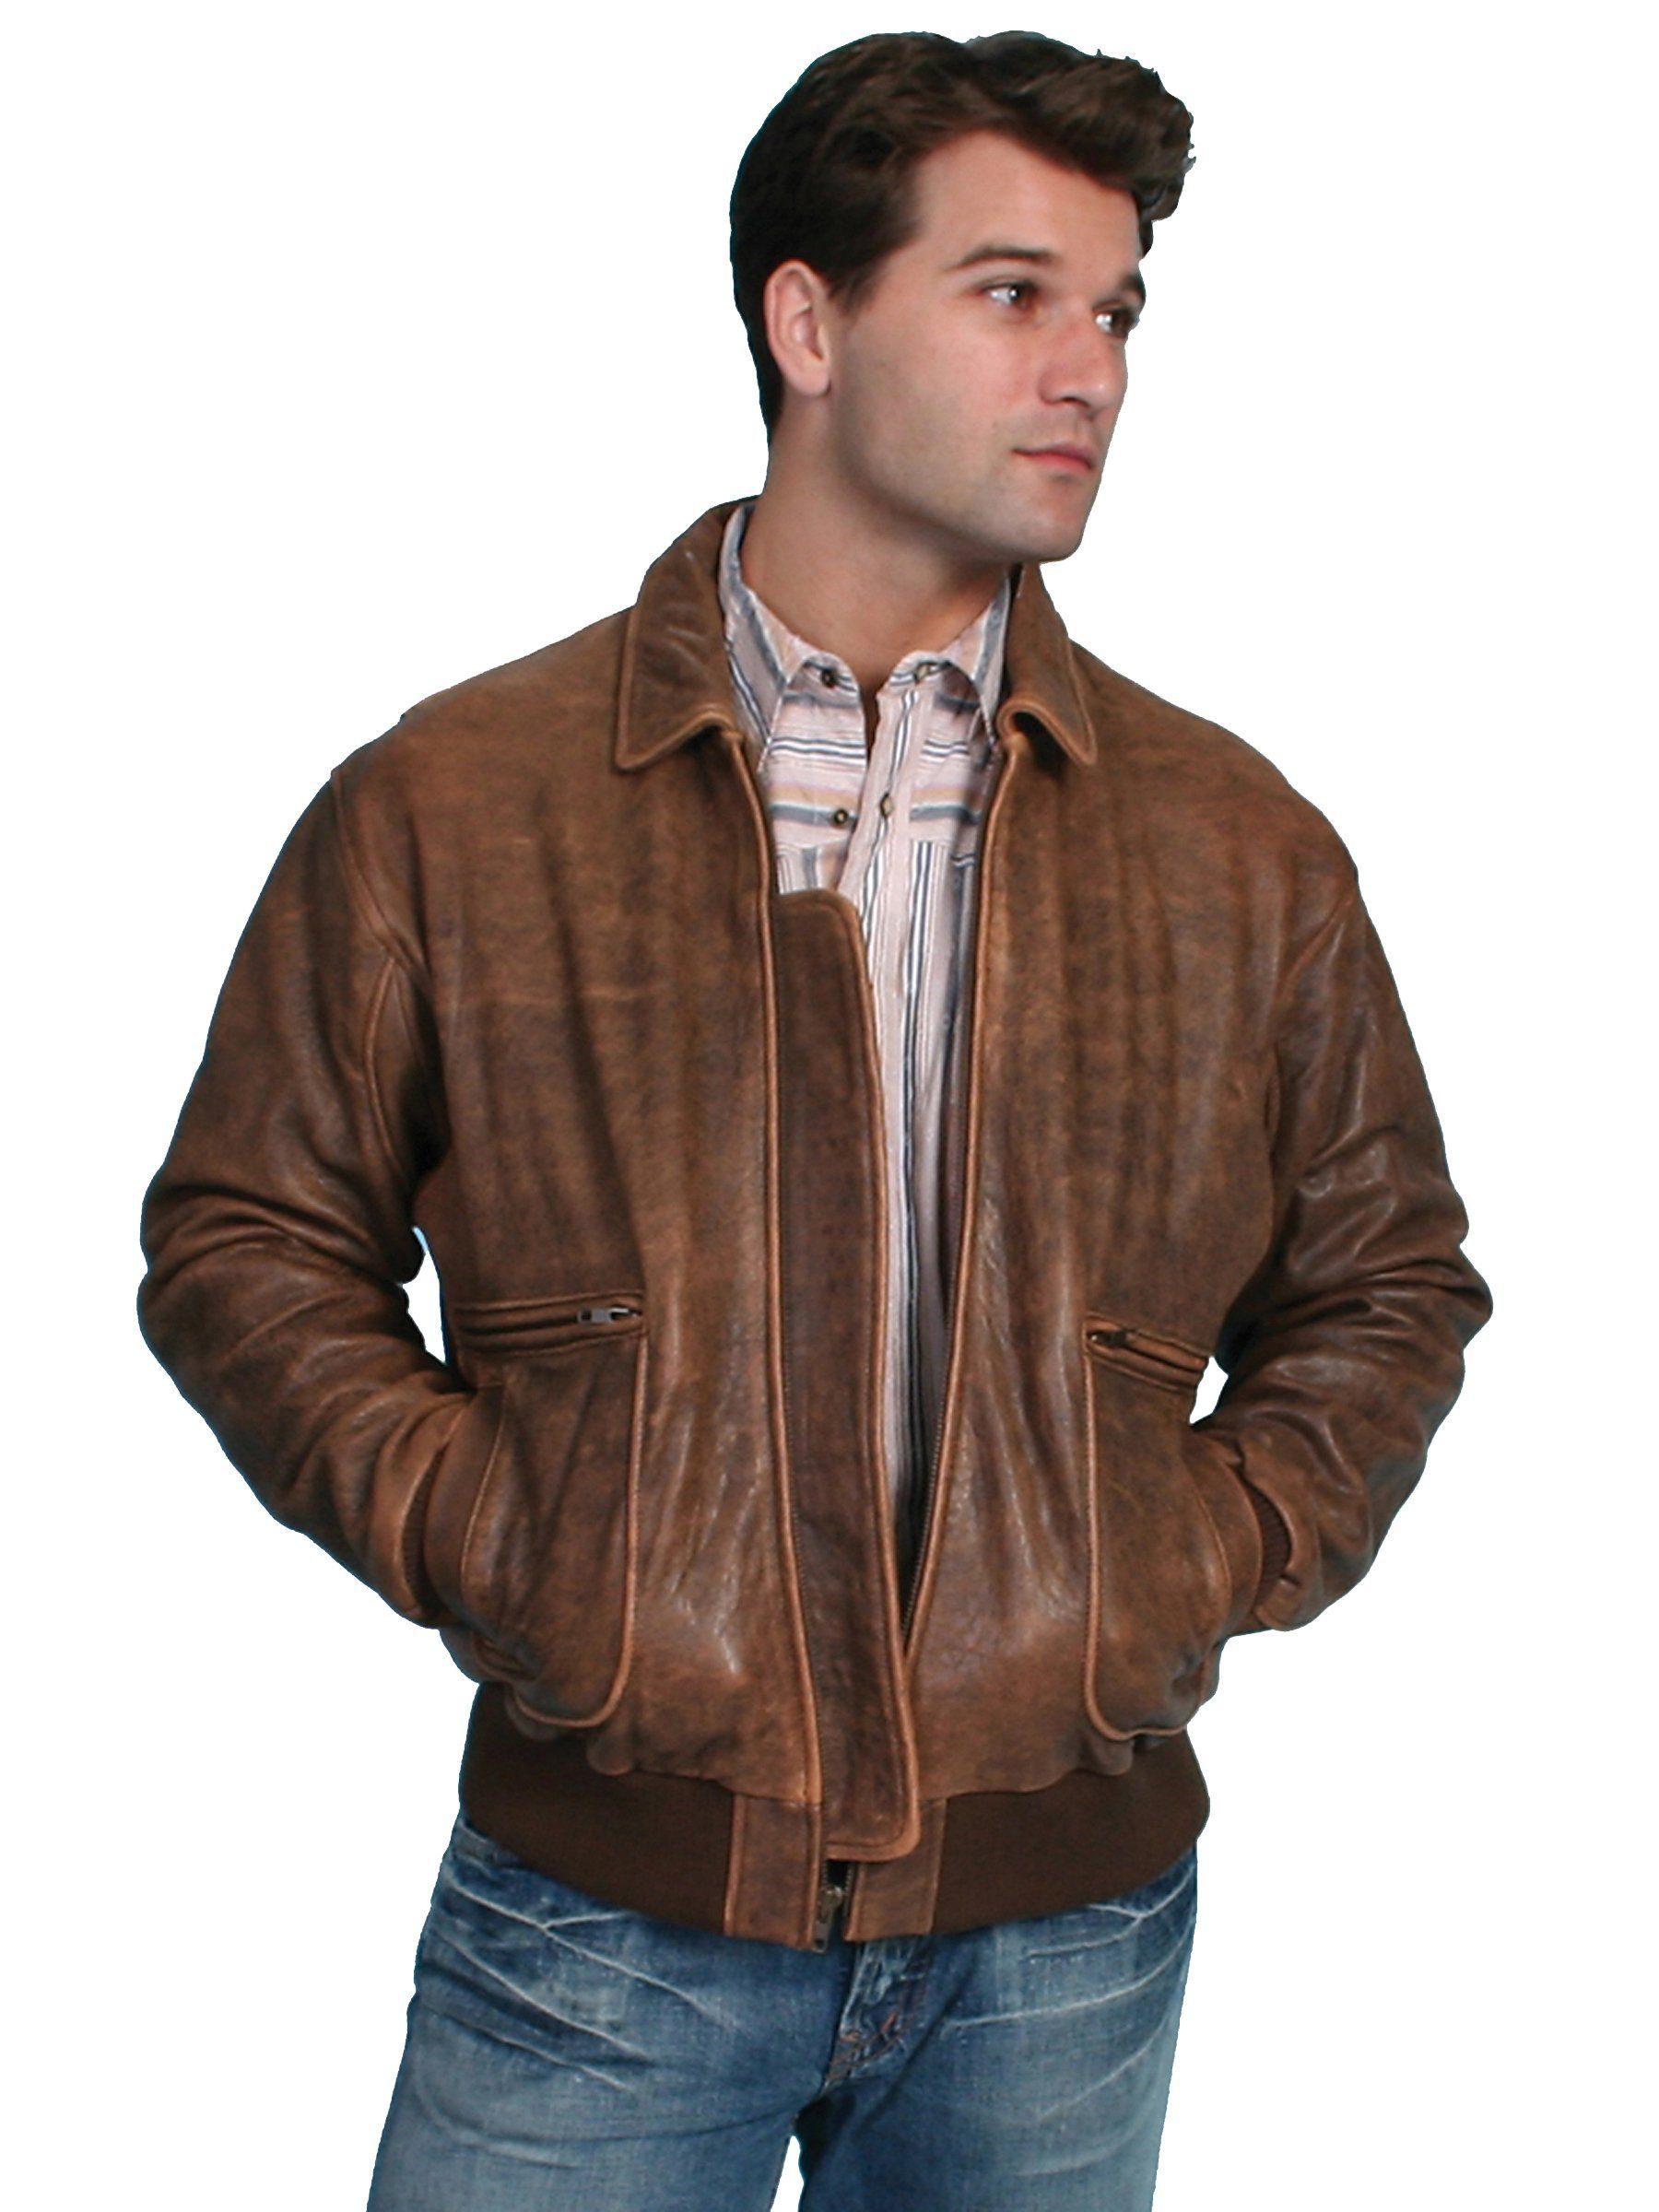 Lambskin bomber jacket. Authentic bomber styling with bi